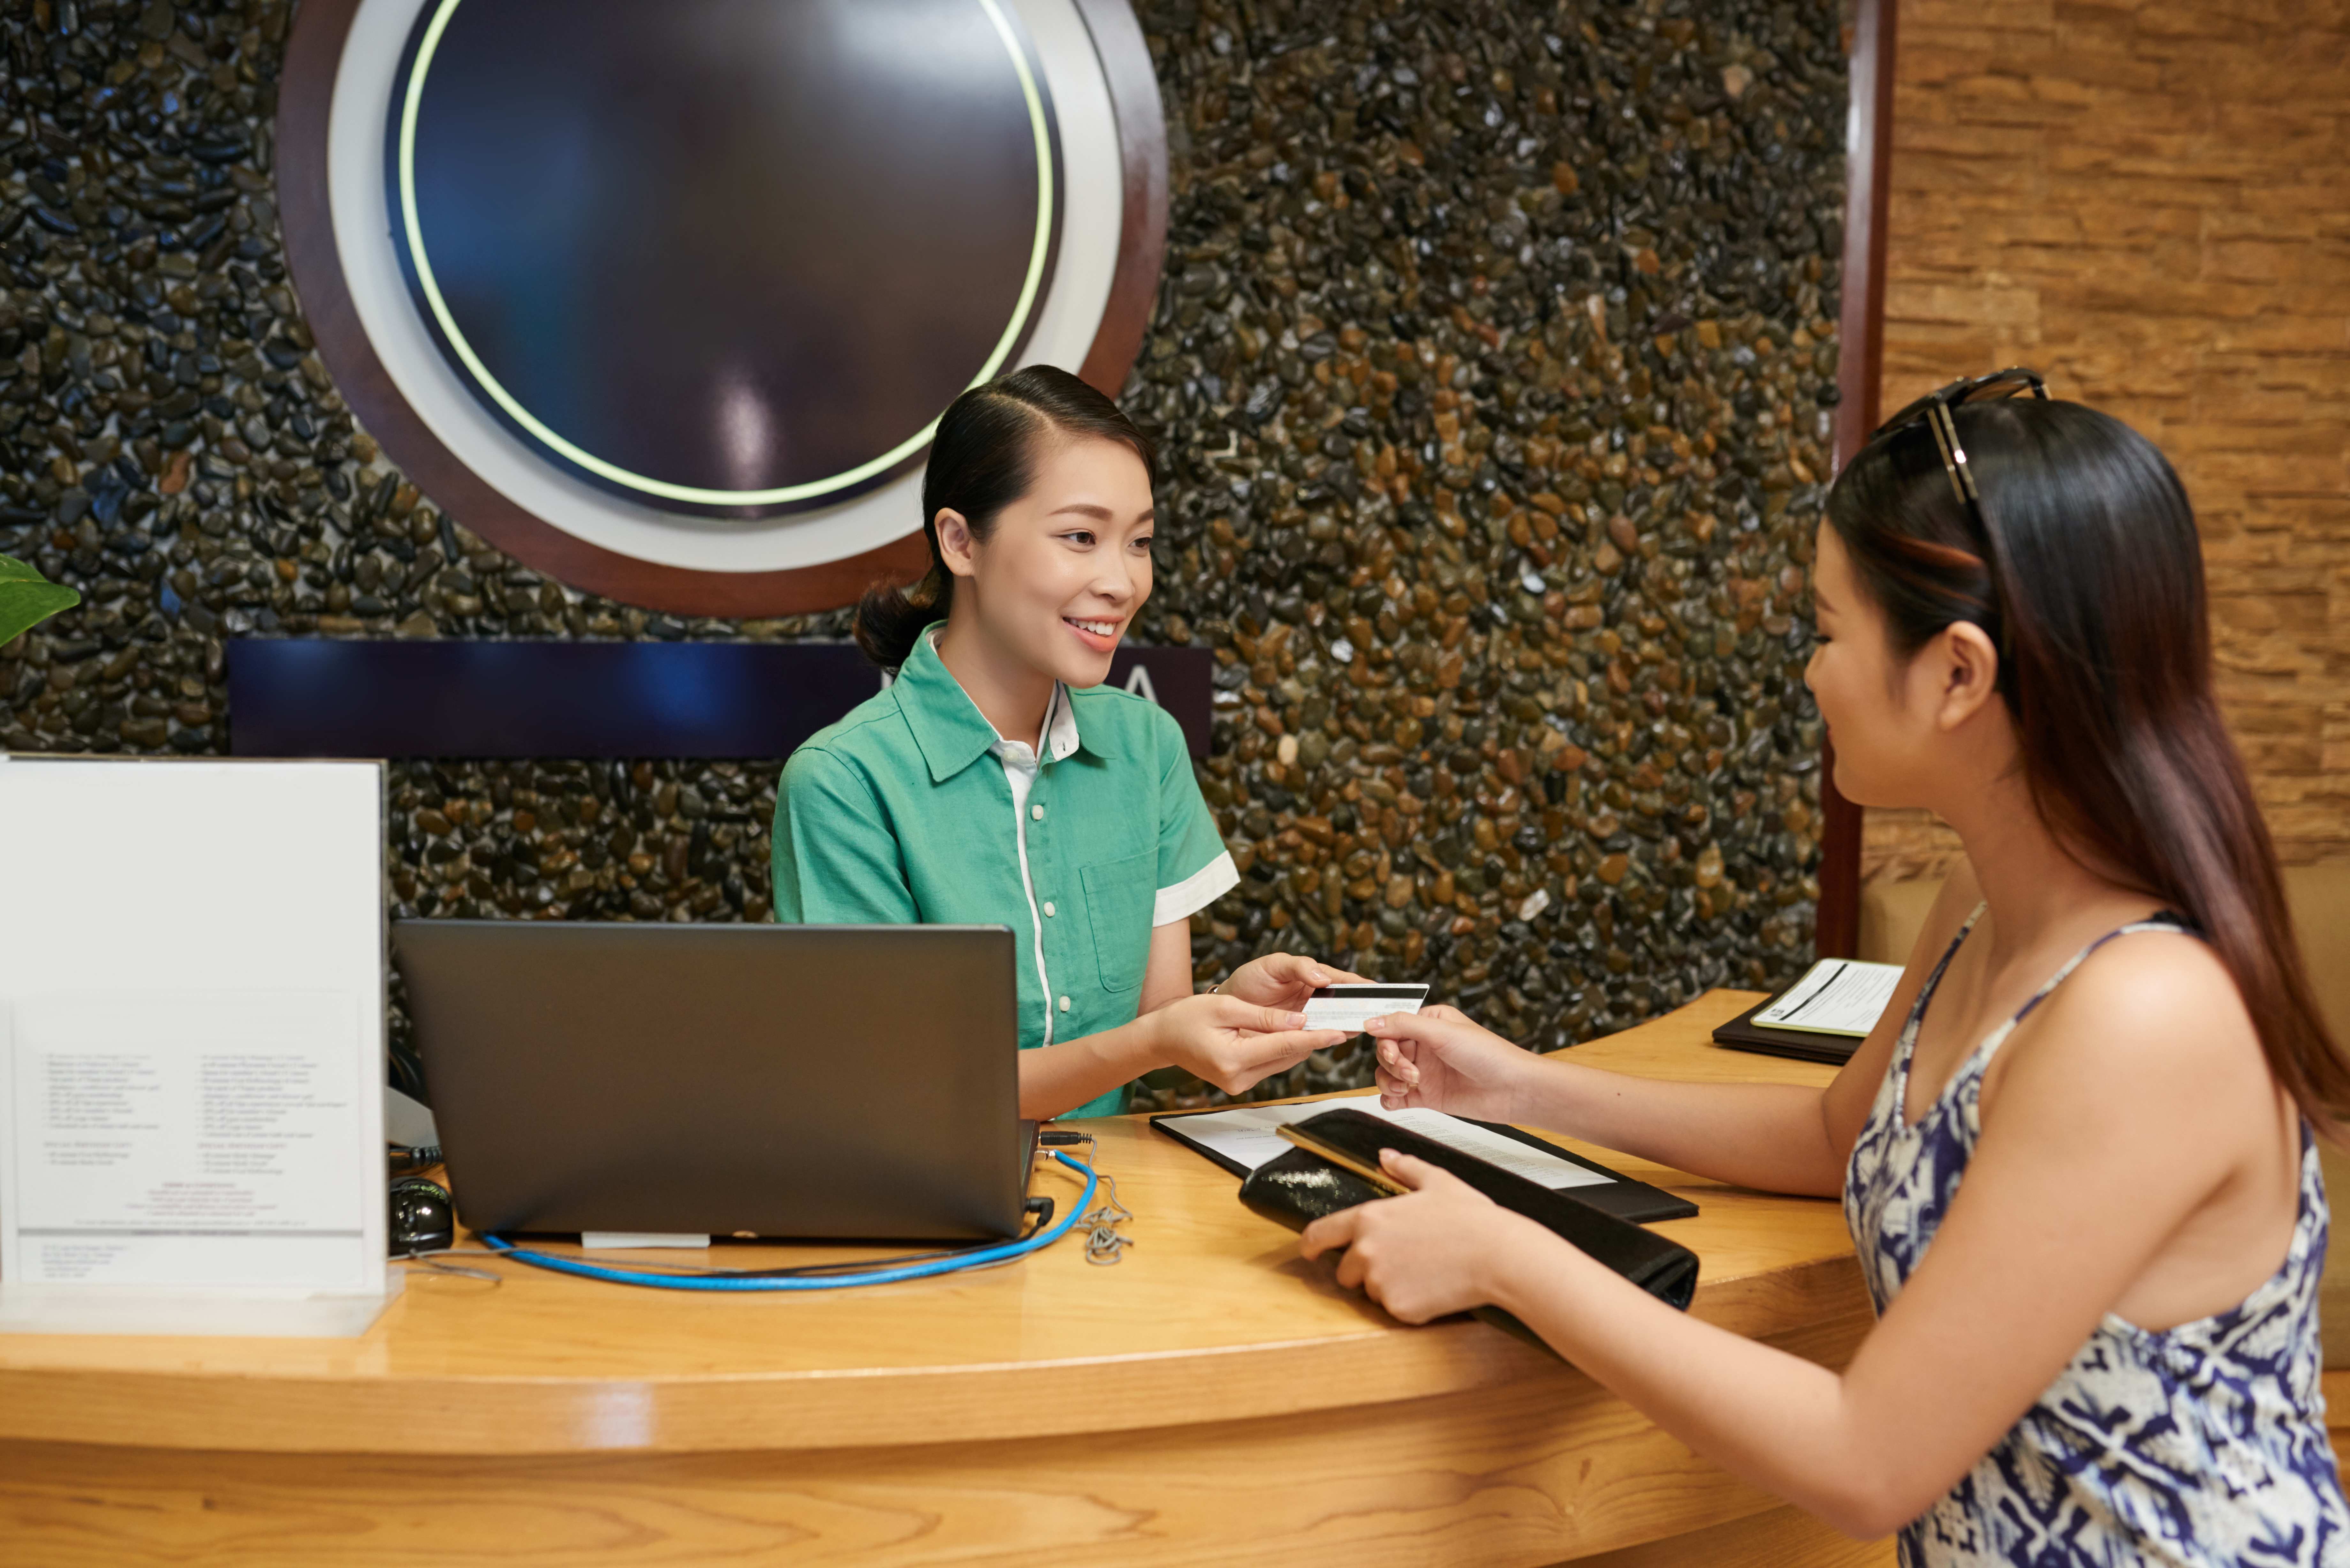 Paying with Credit Card at Spa Salon